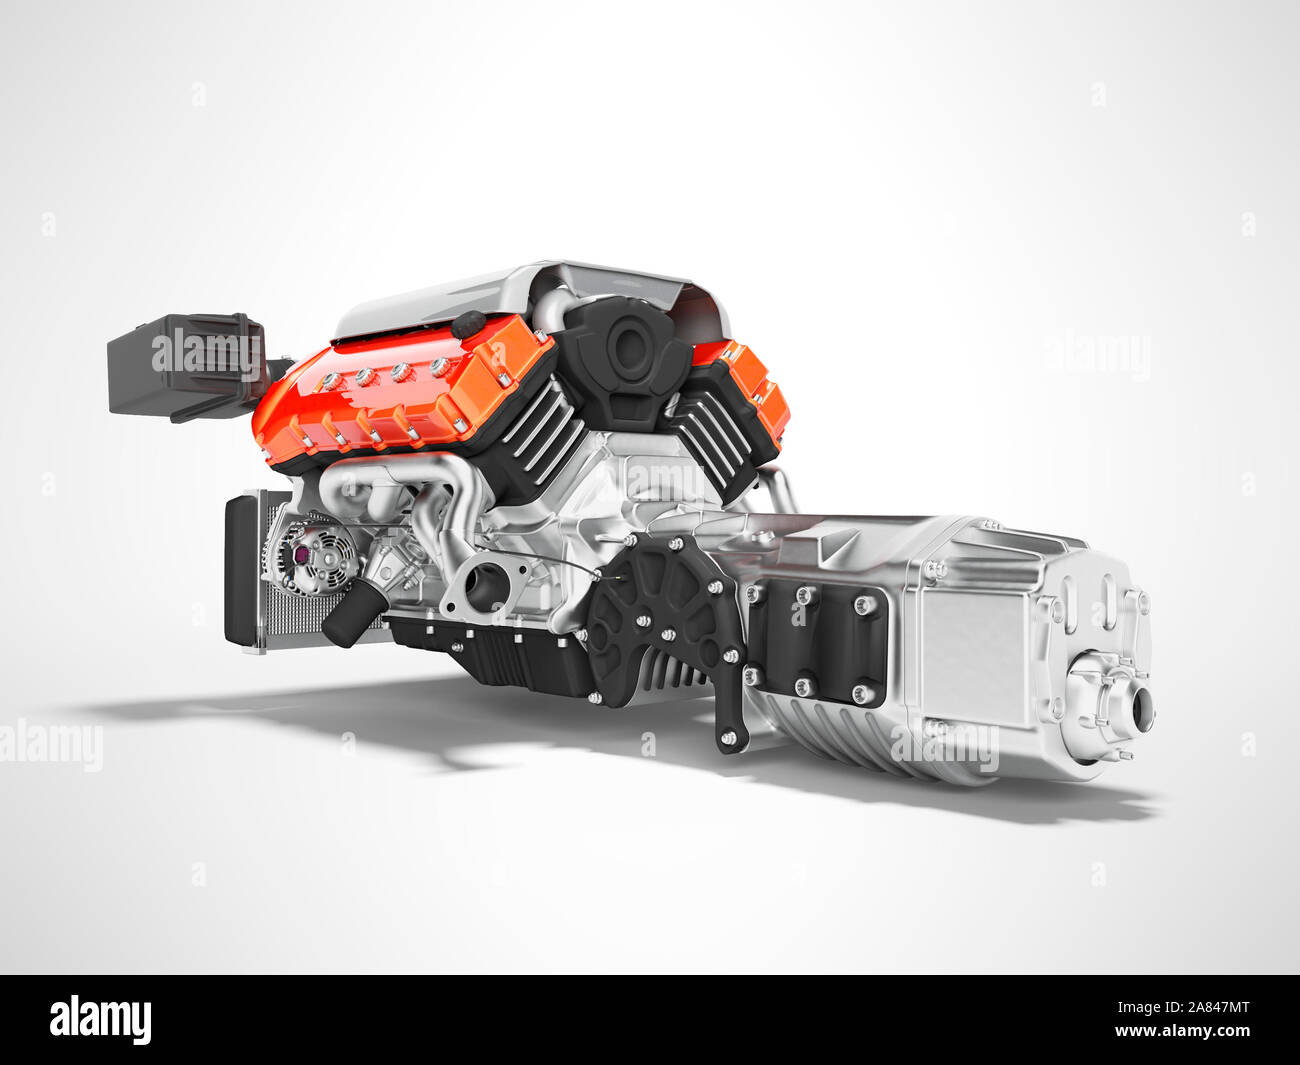 Car engine with air filters and manifold gearbox 3d render on gray background with shadow Stock Photo